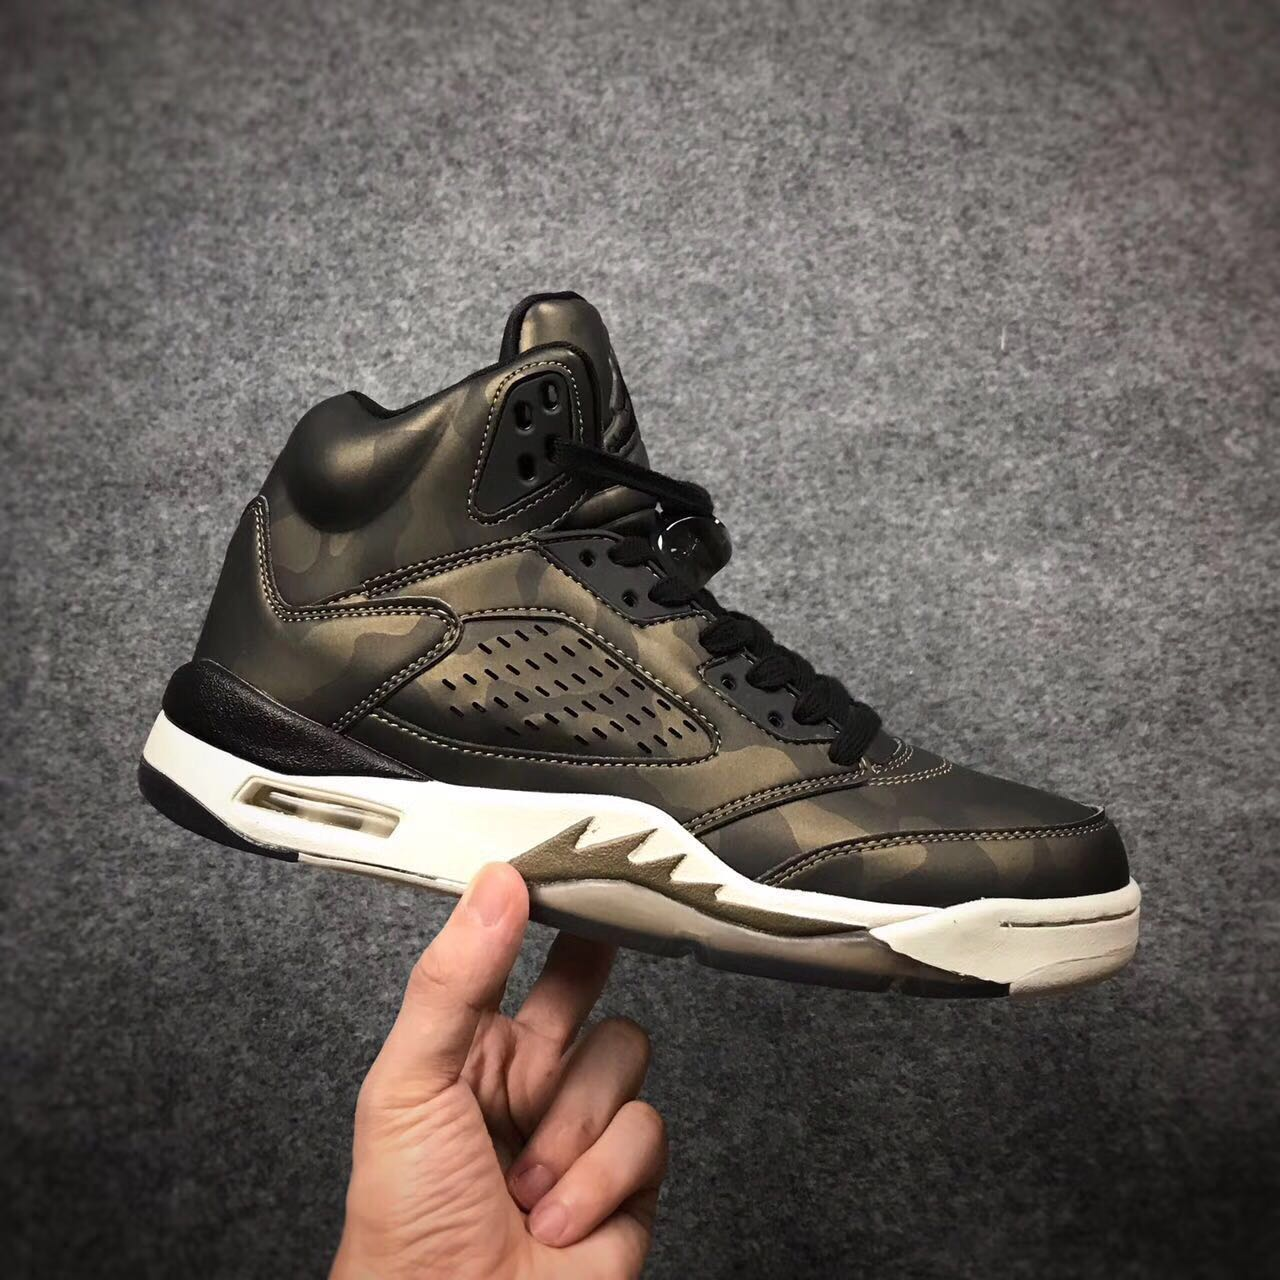 2017 Jordan 5 Premium Heiress Metallic Field Gold Camo Shoes